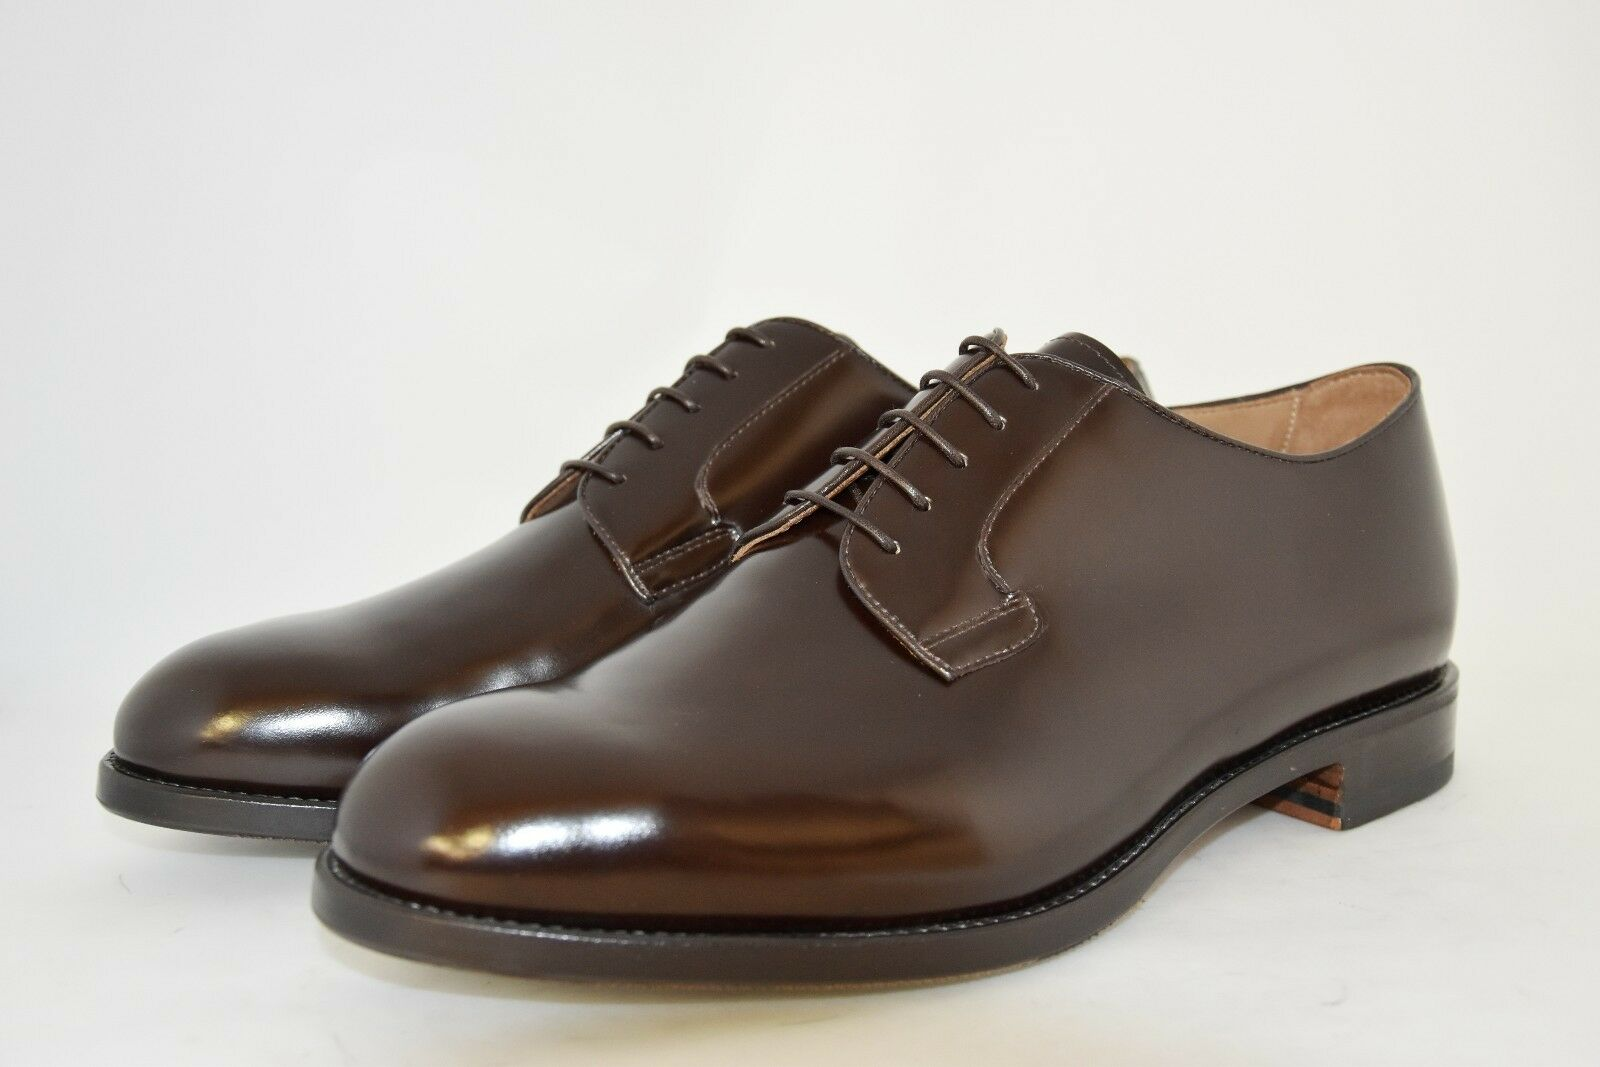 MAN-10½eu-11½usa-DERBY-SHINE BROWN CALF-LEATHER SOLE+HALF RUBBER